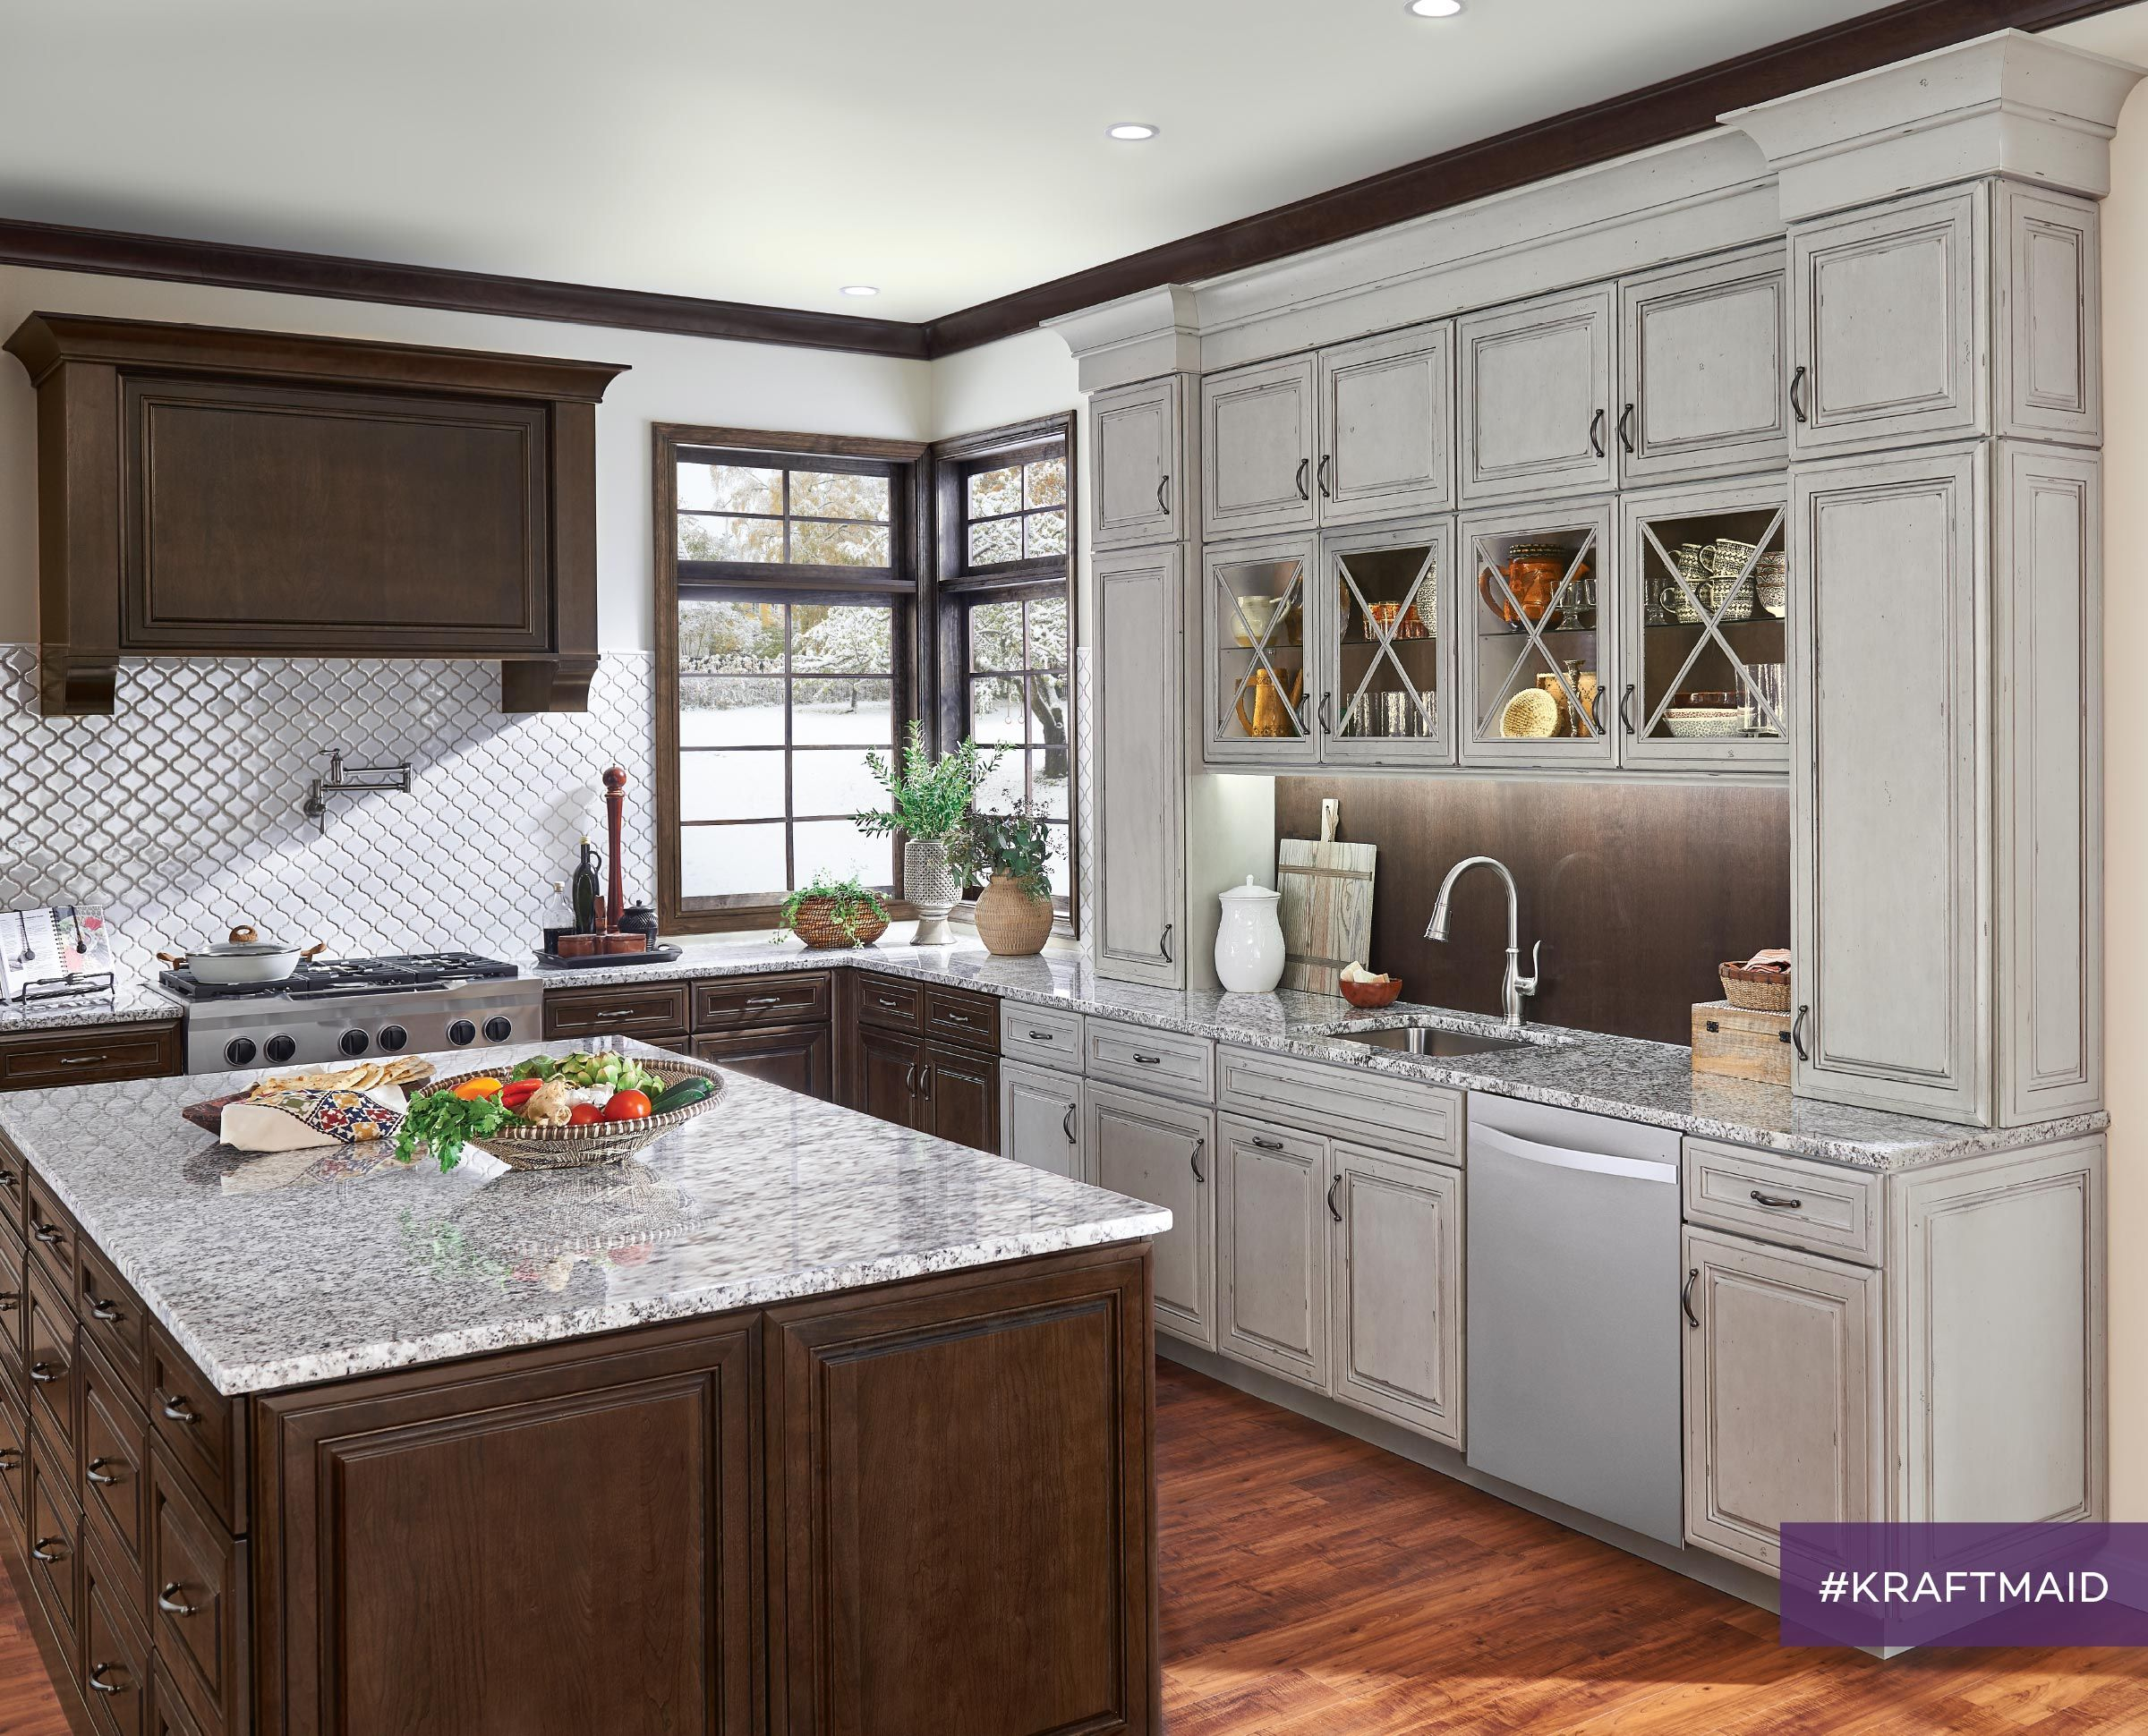 Glass Cabinet Doors Keep Your Favorite Items On Display But Out Of Little Ones Reach Custom Kitchen Remodel Kitchen And Bath Showroom Kitchen Cabinet Design